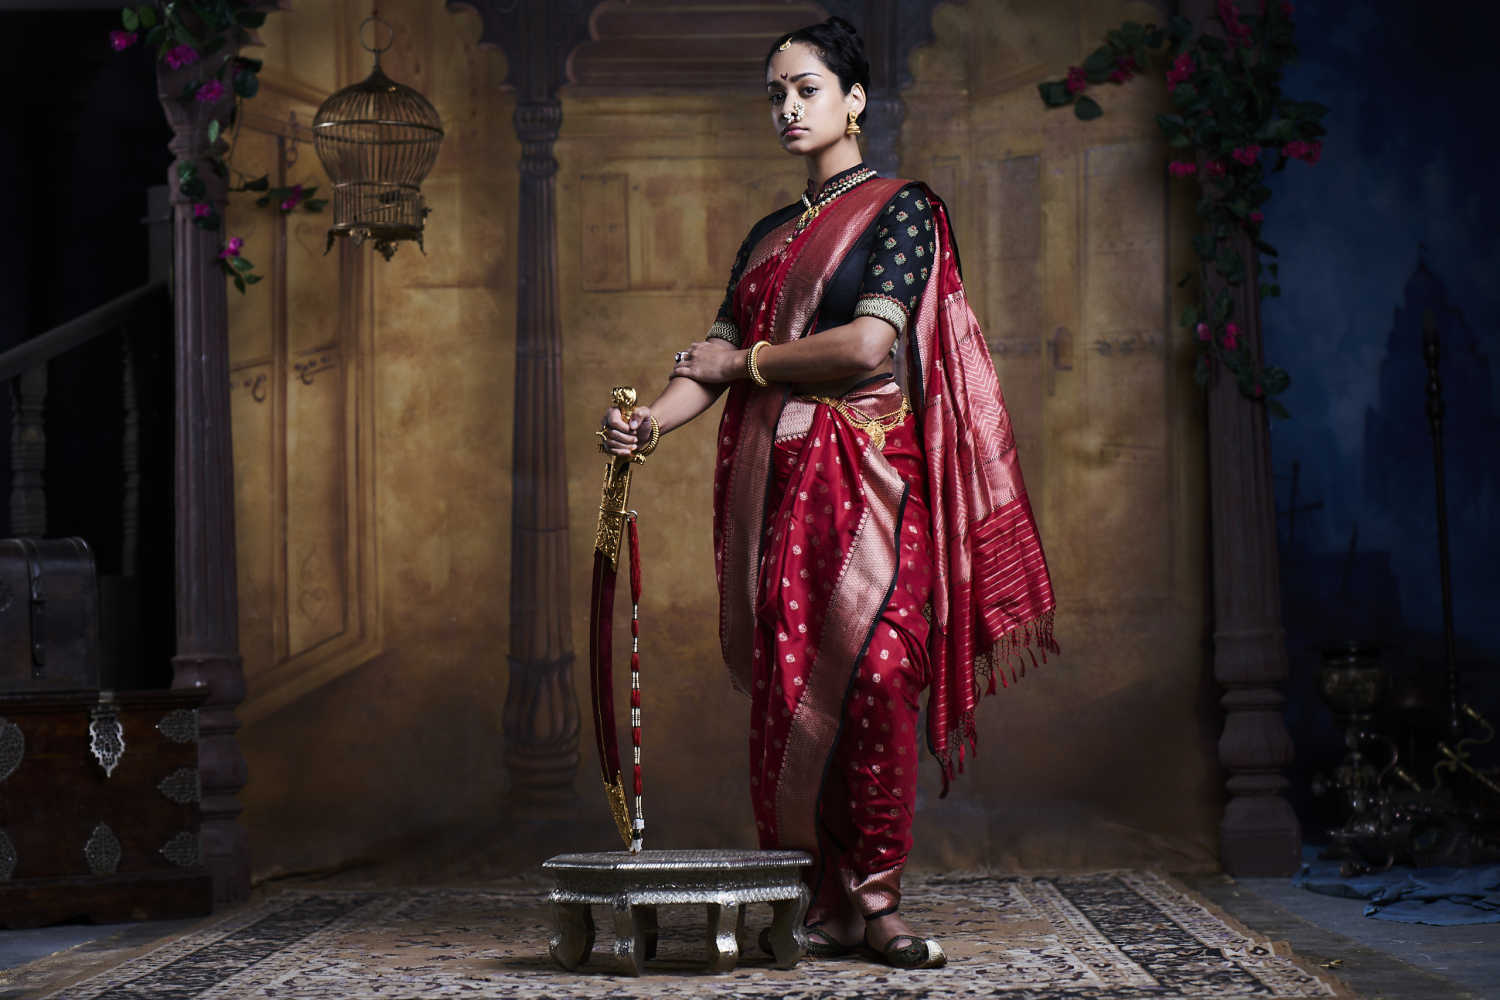 50 Sarees Arrive For Rani Laxmibai In Swords And Sceptres